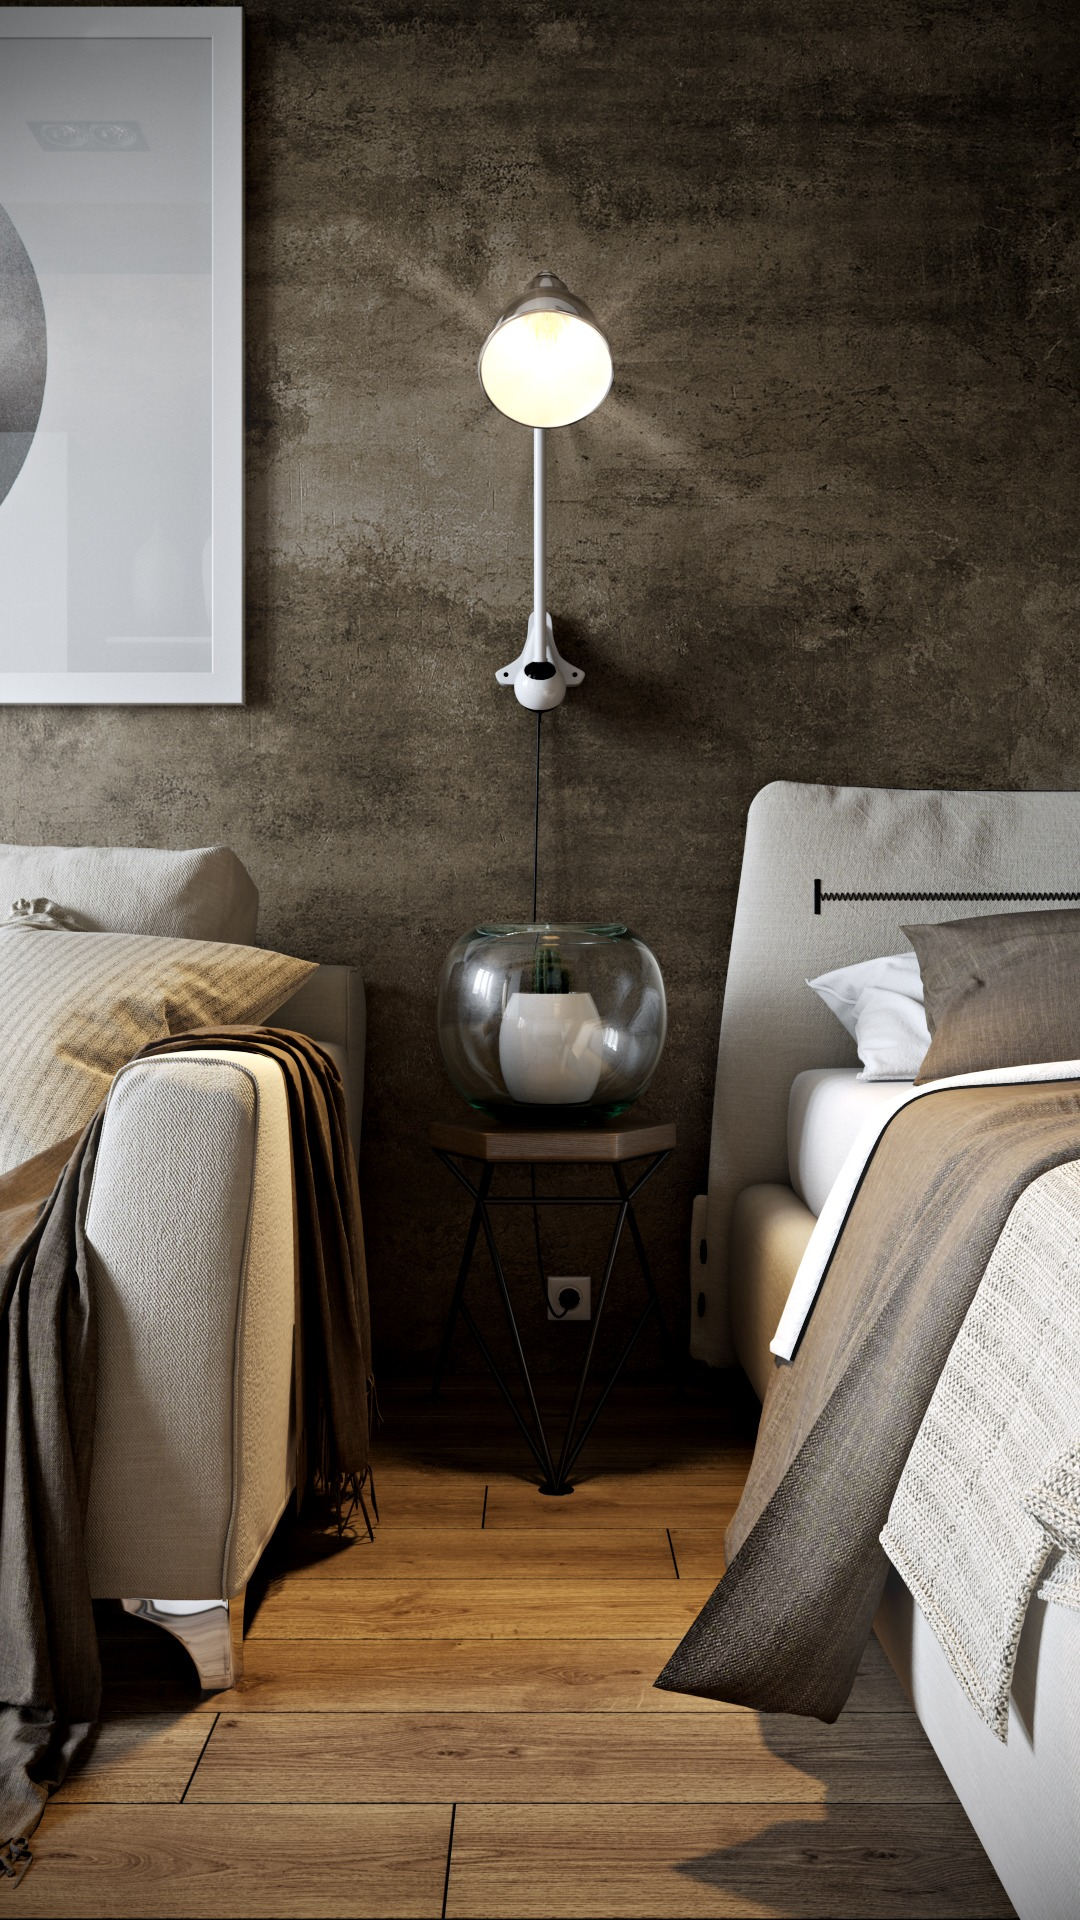 Textured Wall Treatment - Dark neutrals and clean lines unite six stylish homes